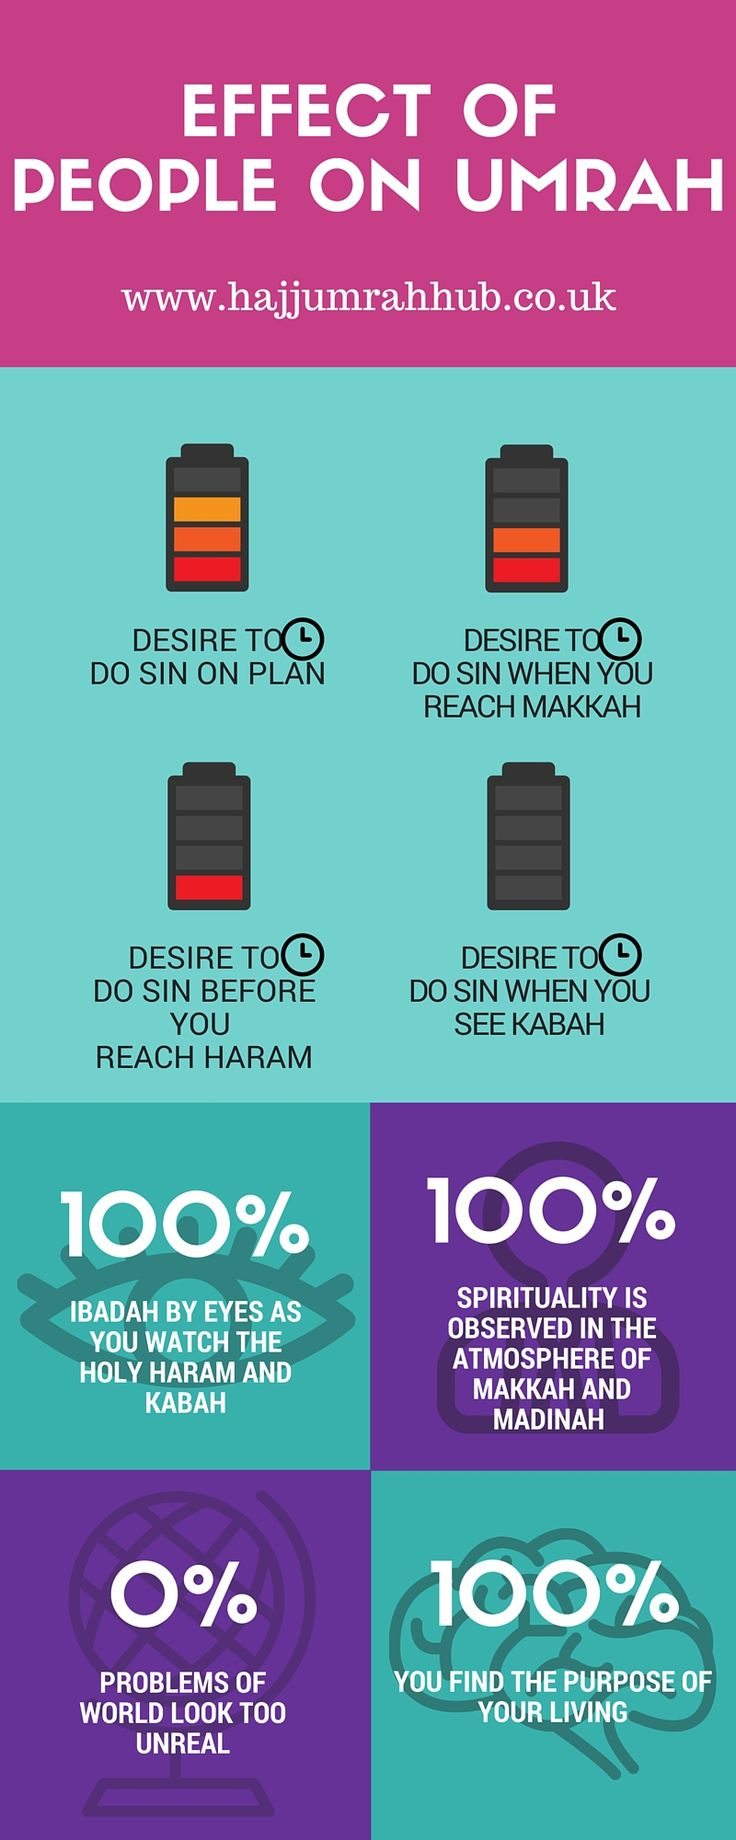 Umrah and its effects